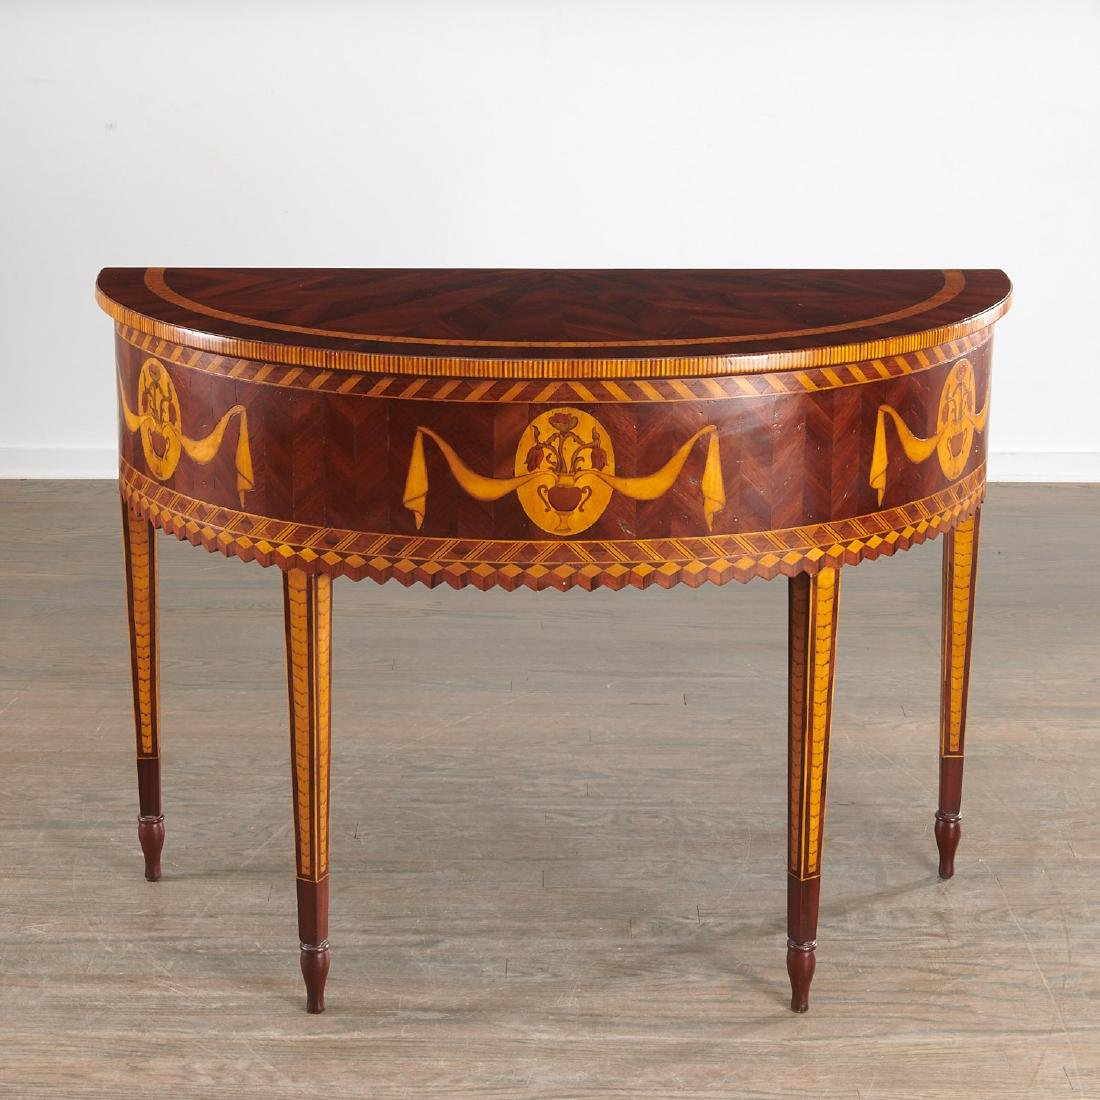 Alfonso Marina parquetry demilune table